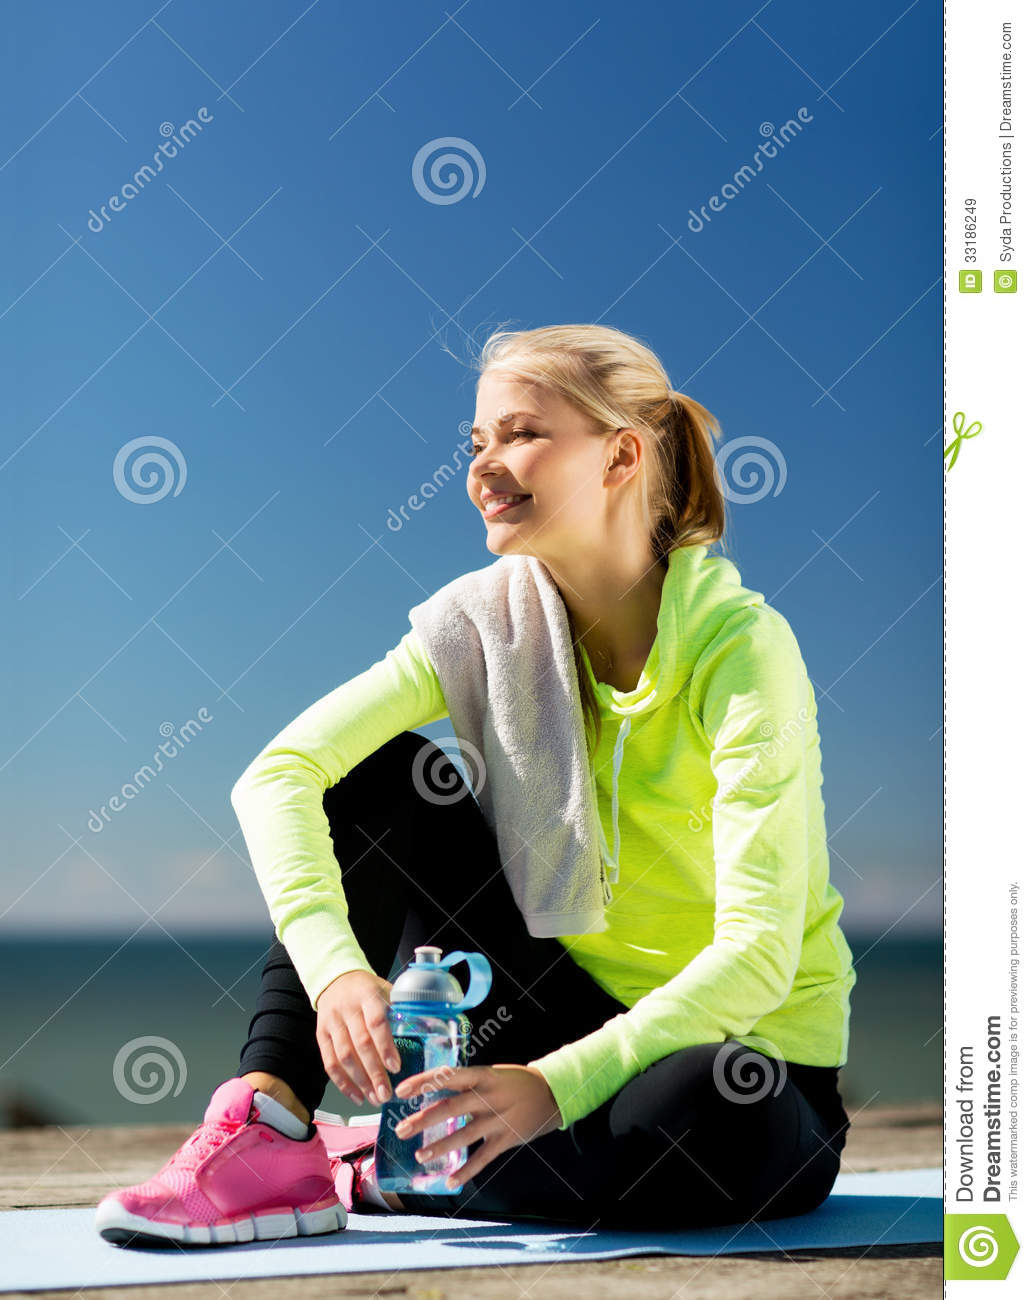 Sport and lifestyle concept woman resting after doing sports